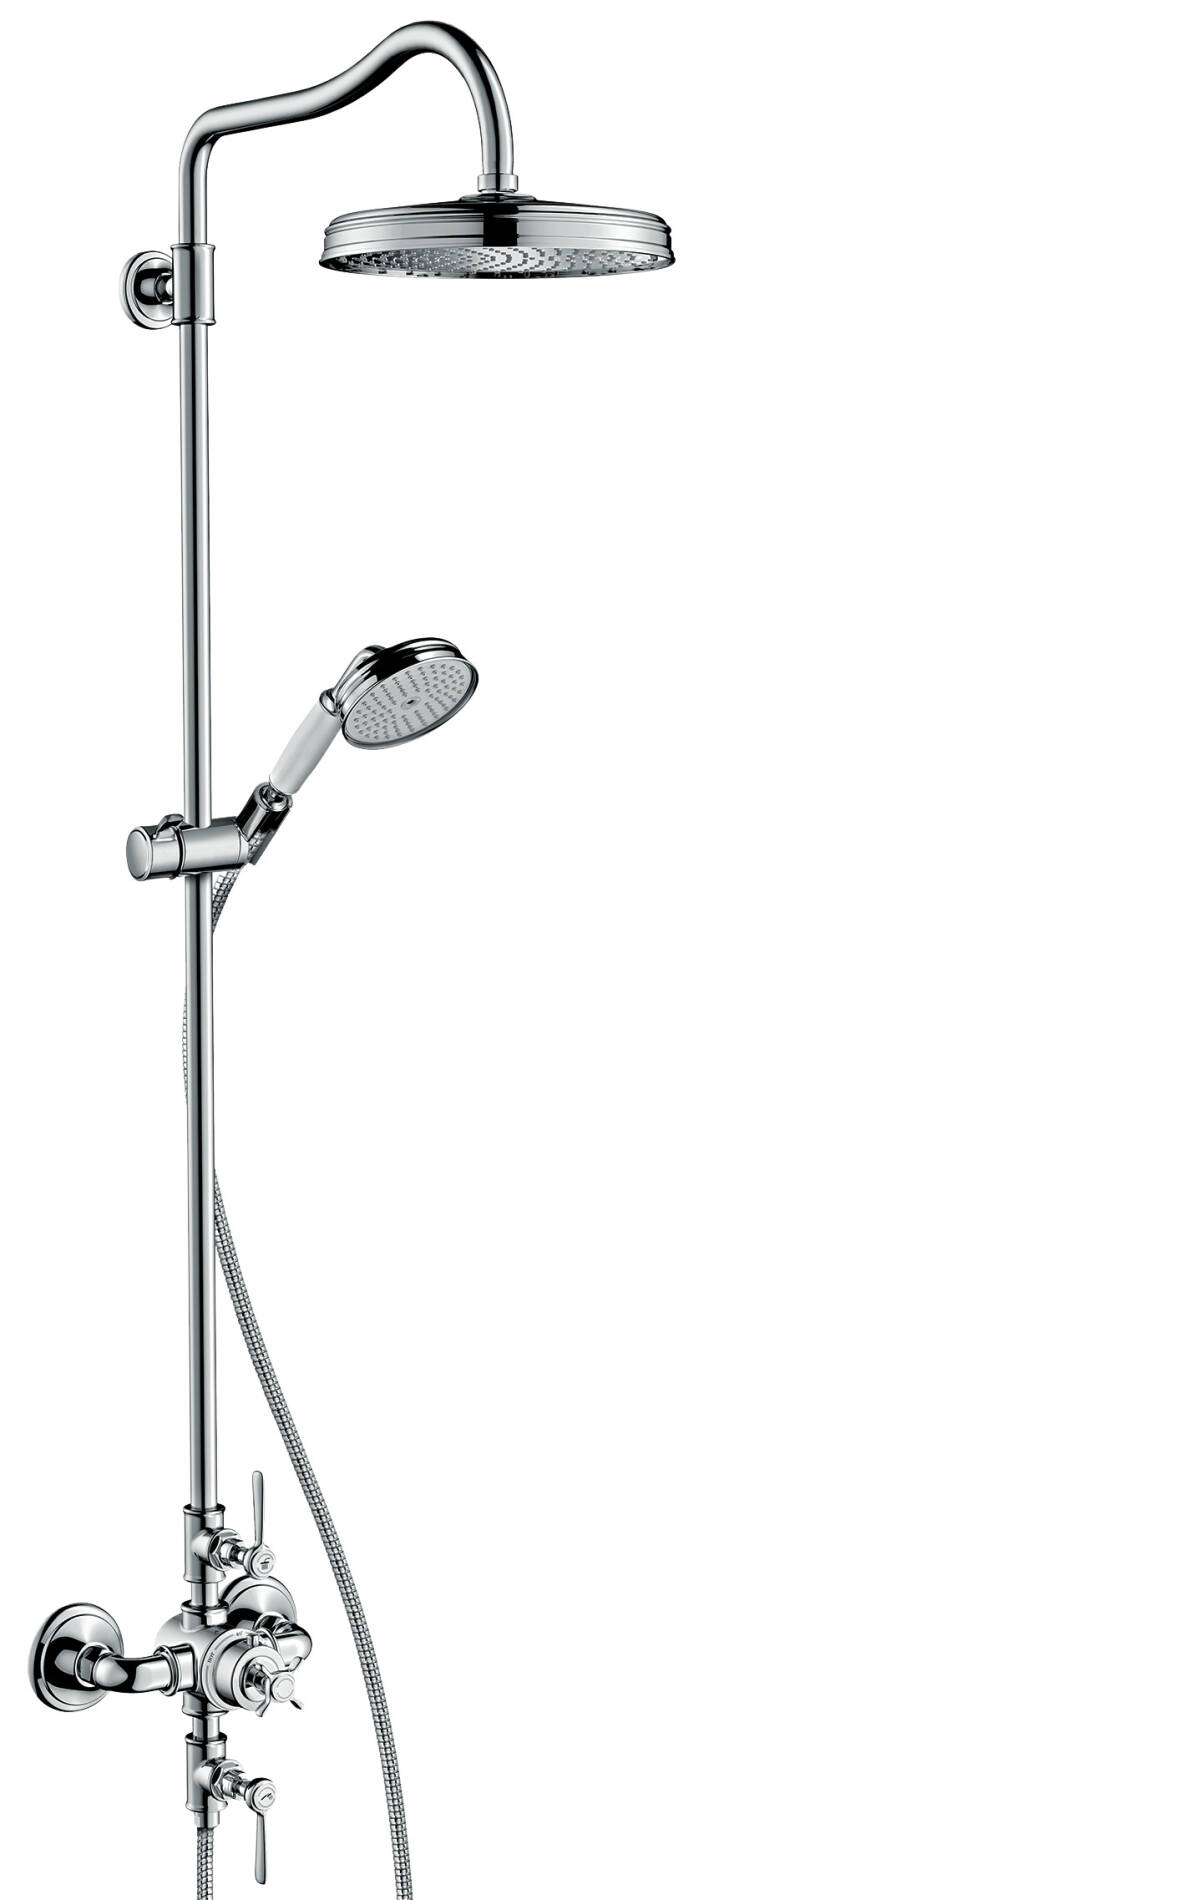 Showerpipe with thermostat and overhead shower 240 1jet, Brushed Gold Optic, 16572250